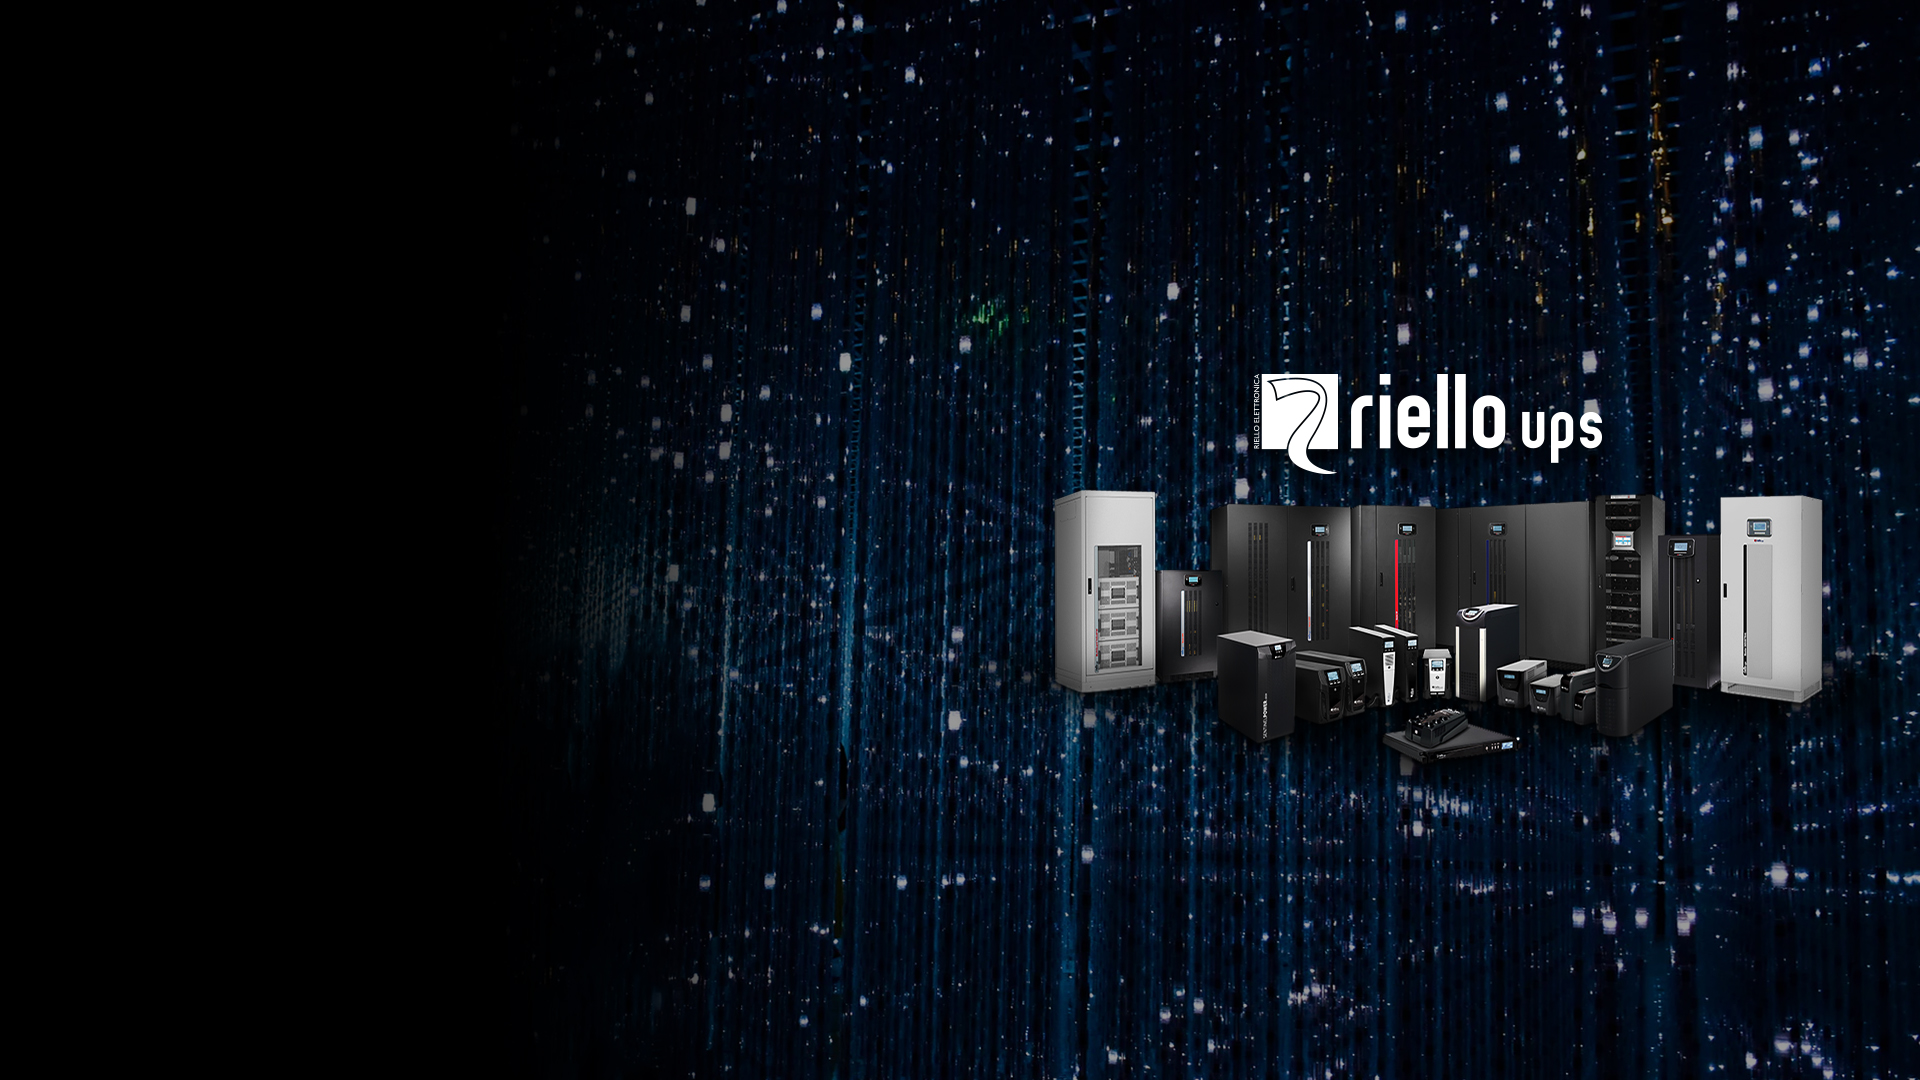 Official Distributor of Riello UPS